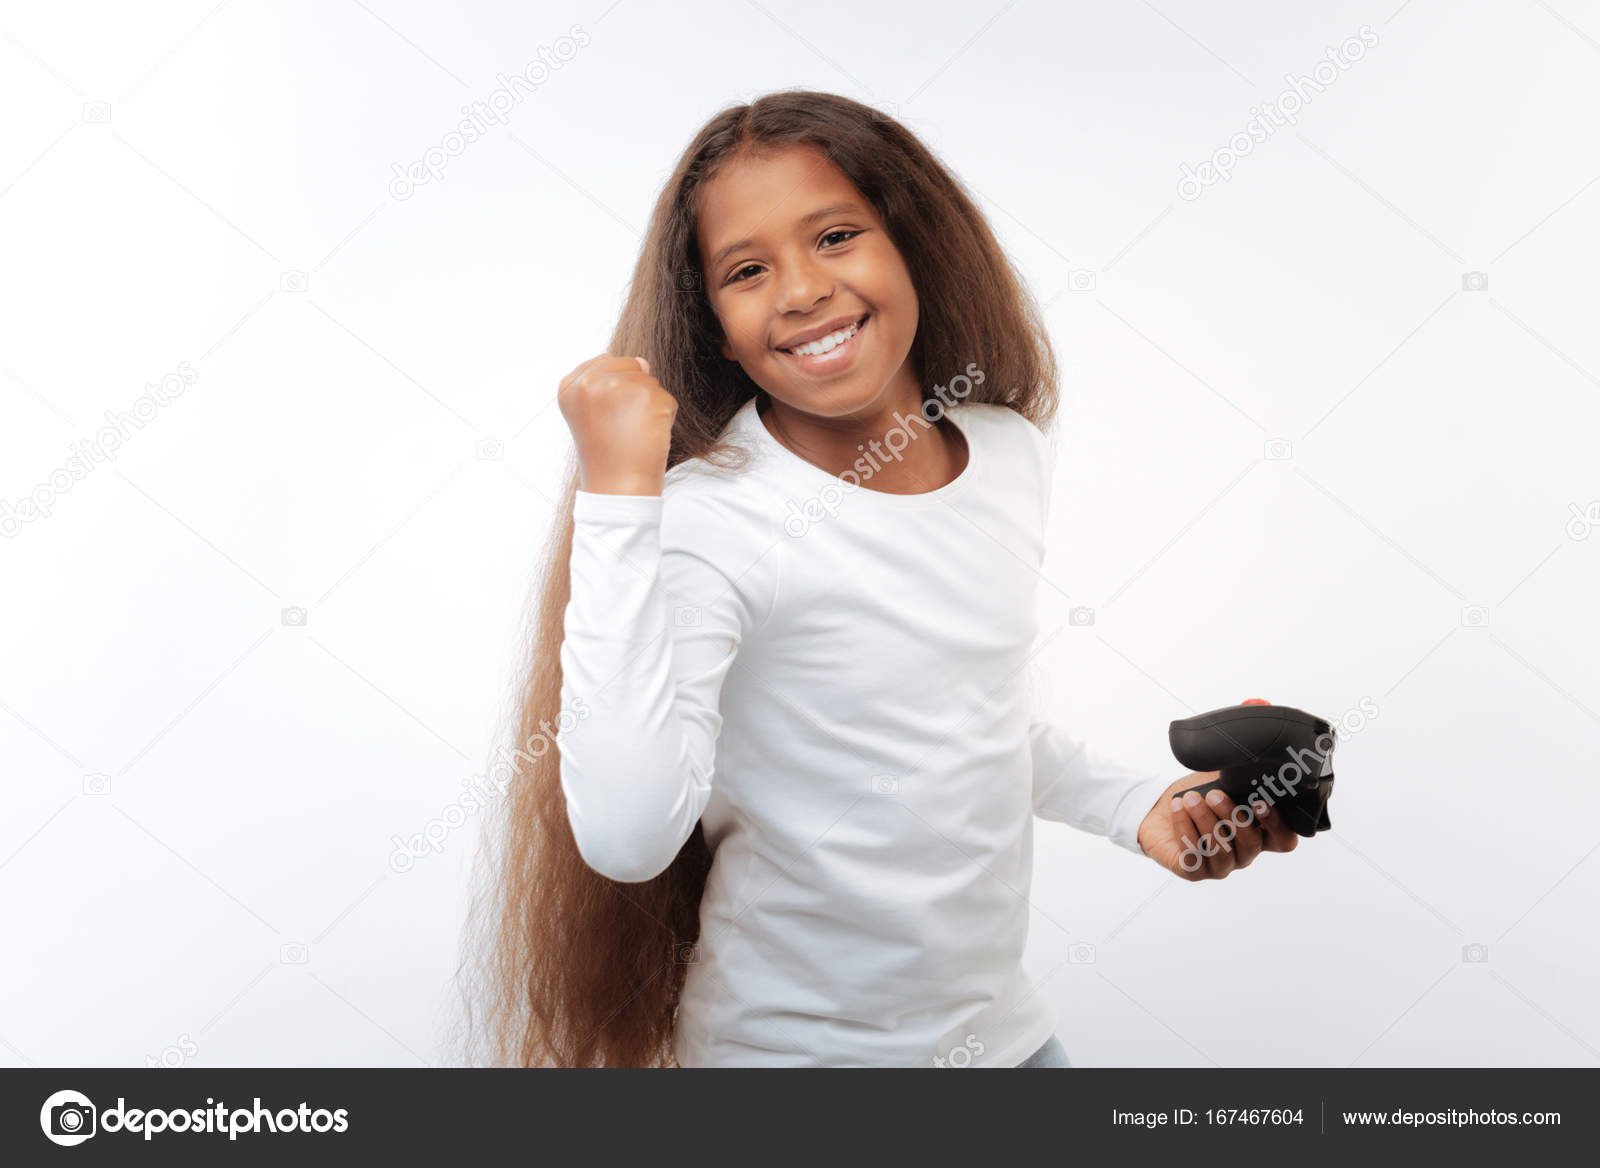 Cute pre-teen girl celebrating victory in video game– stock image